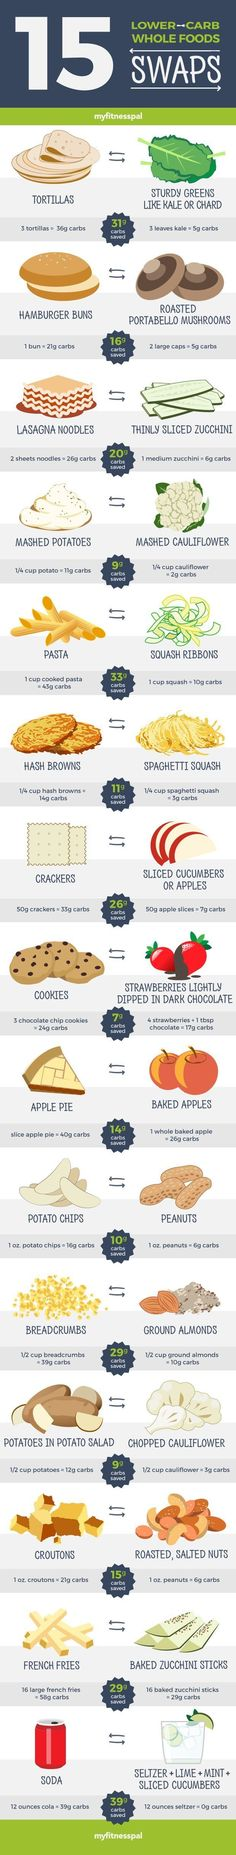 Lower-Carb Whole Food Swaps Trying to eat low carb? Try these easy lower carb swaps!Trying to eat low carb? Try these easy lower carb swaps! Healthy Alternatives, Healthy Options, Healthy Tips, Healthy Snacks, Healthy Recipes, Eating Healthy, Clean Eating, Healthy Weight, Healthy Food Substitutes